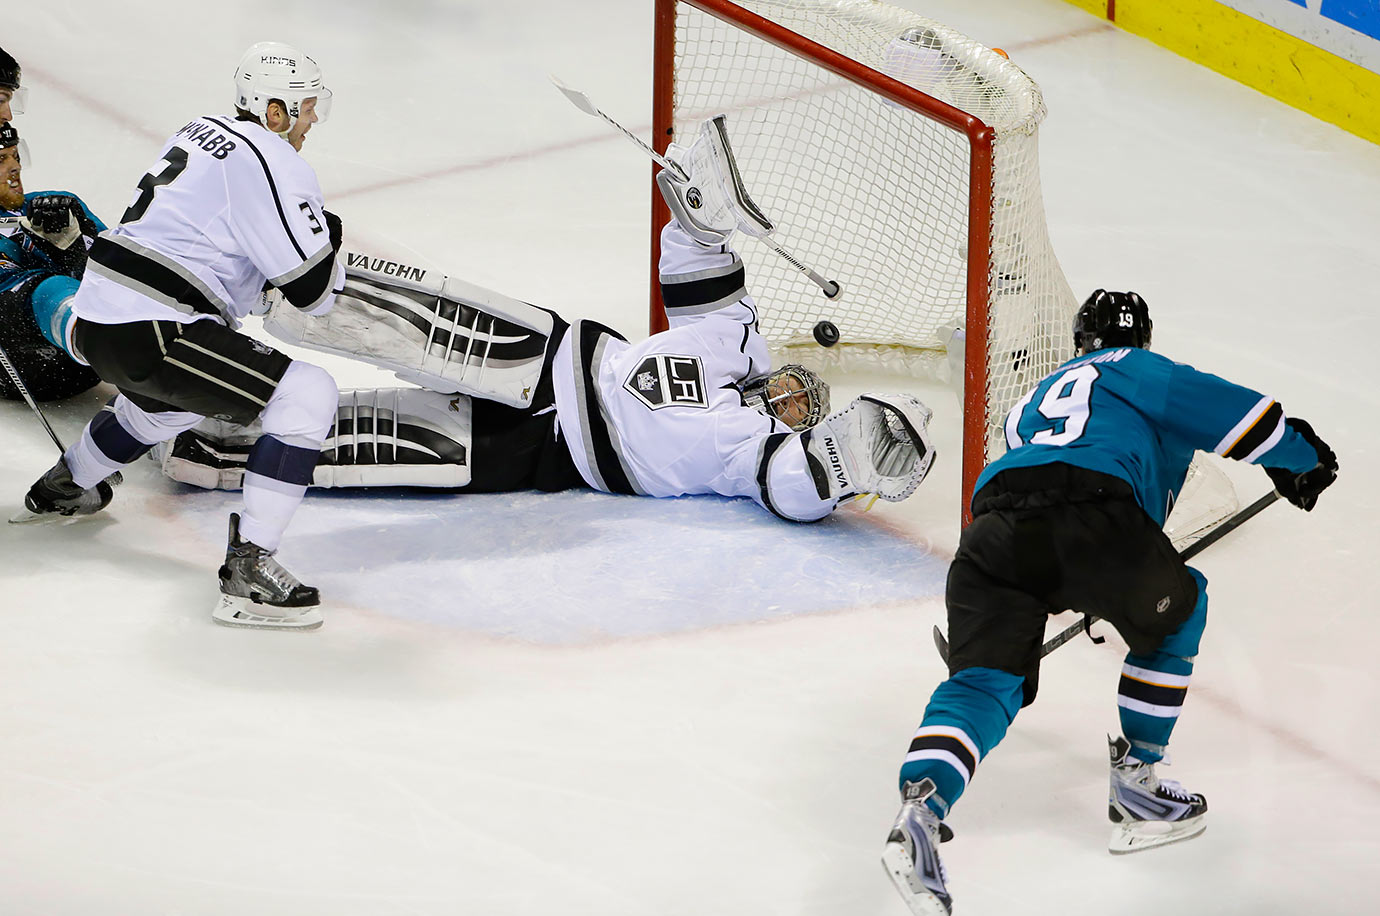 Los Angeles Kings goalie Jonathan Quick is beaten for a goal on a shot by San Jose Sharks center Joe Thornton during the third period of their game in San Jose, Calif.